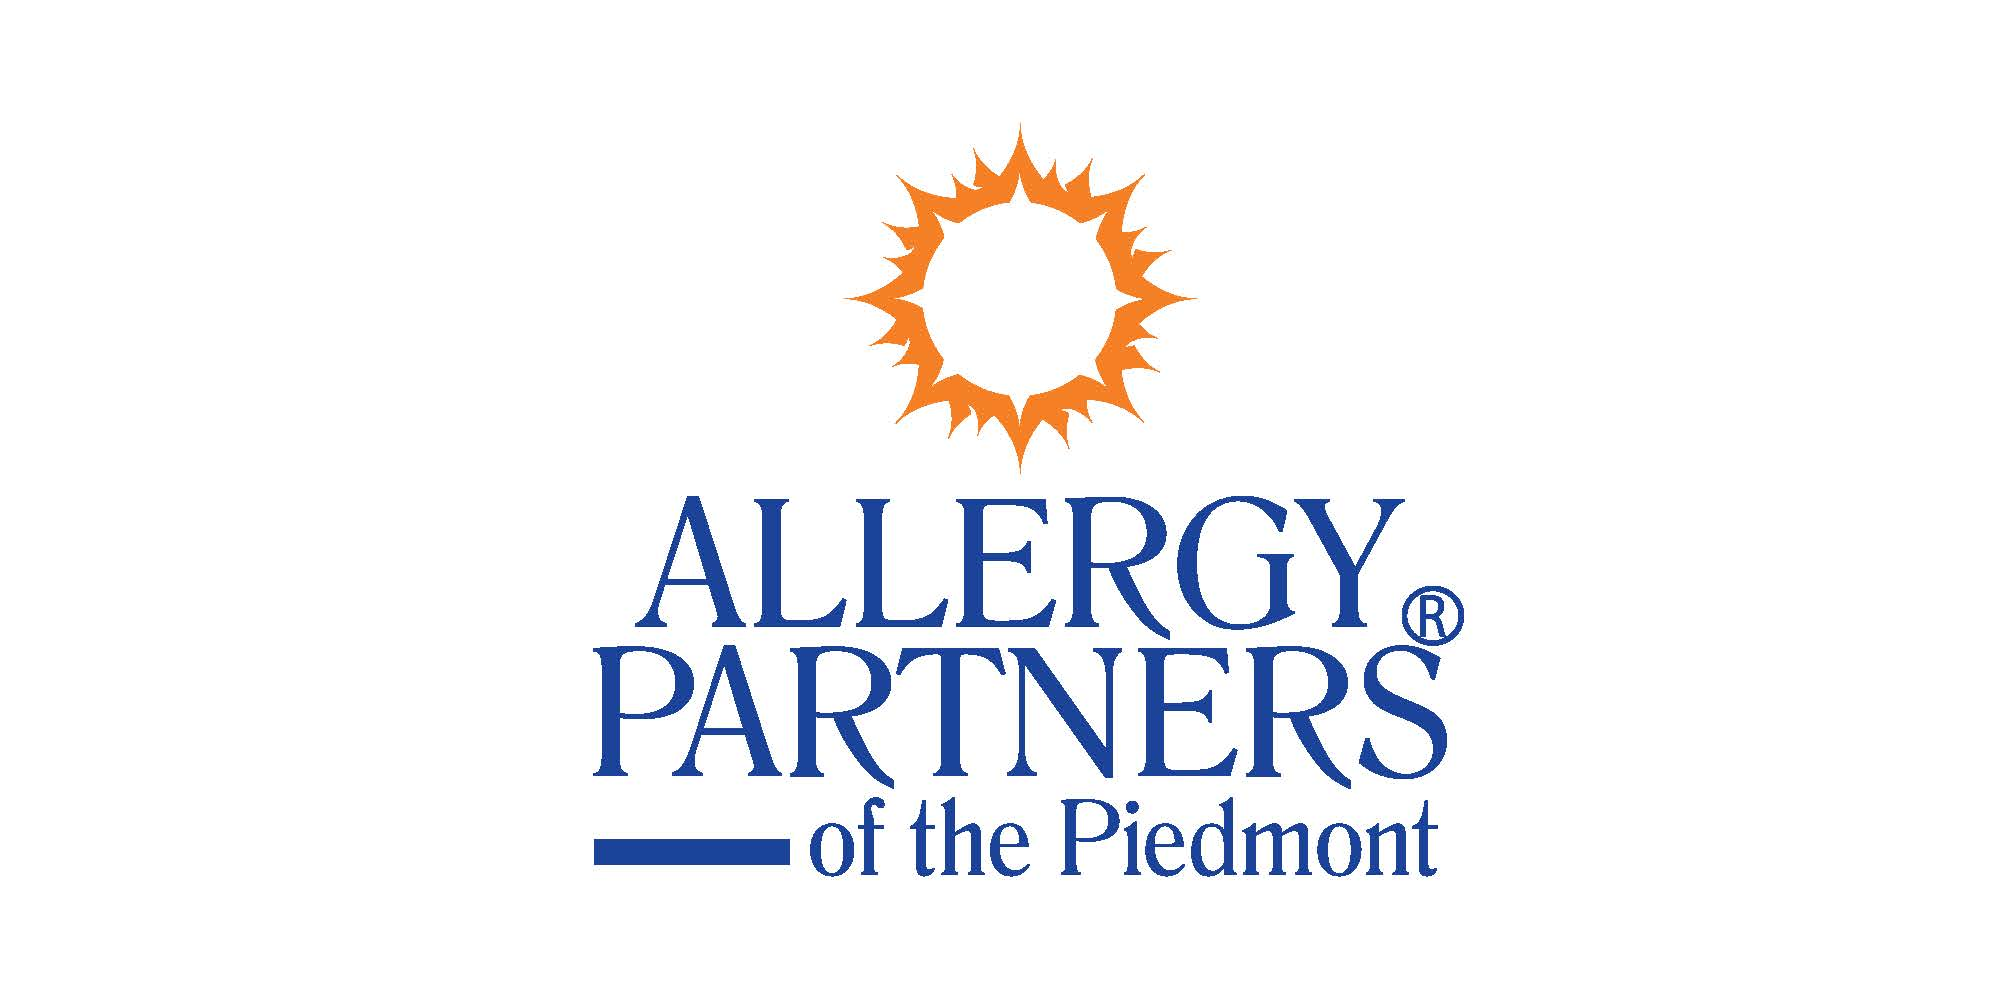 Allergy Partners of the Piedmont